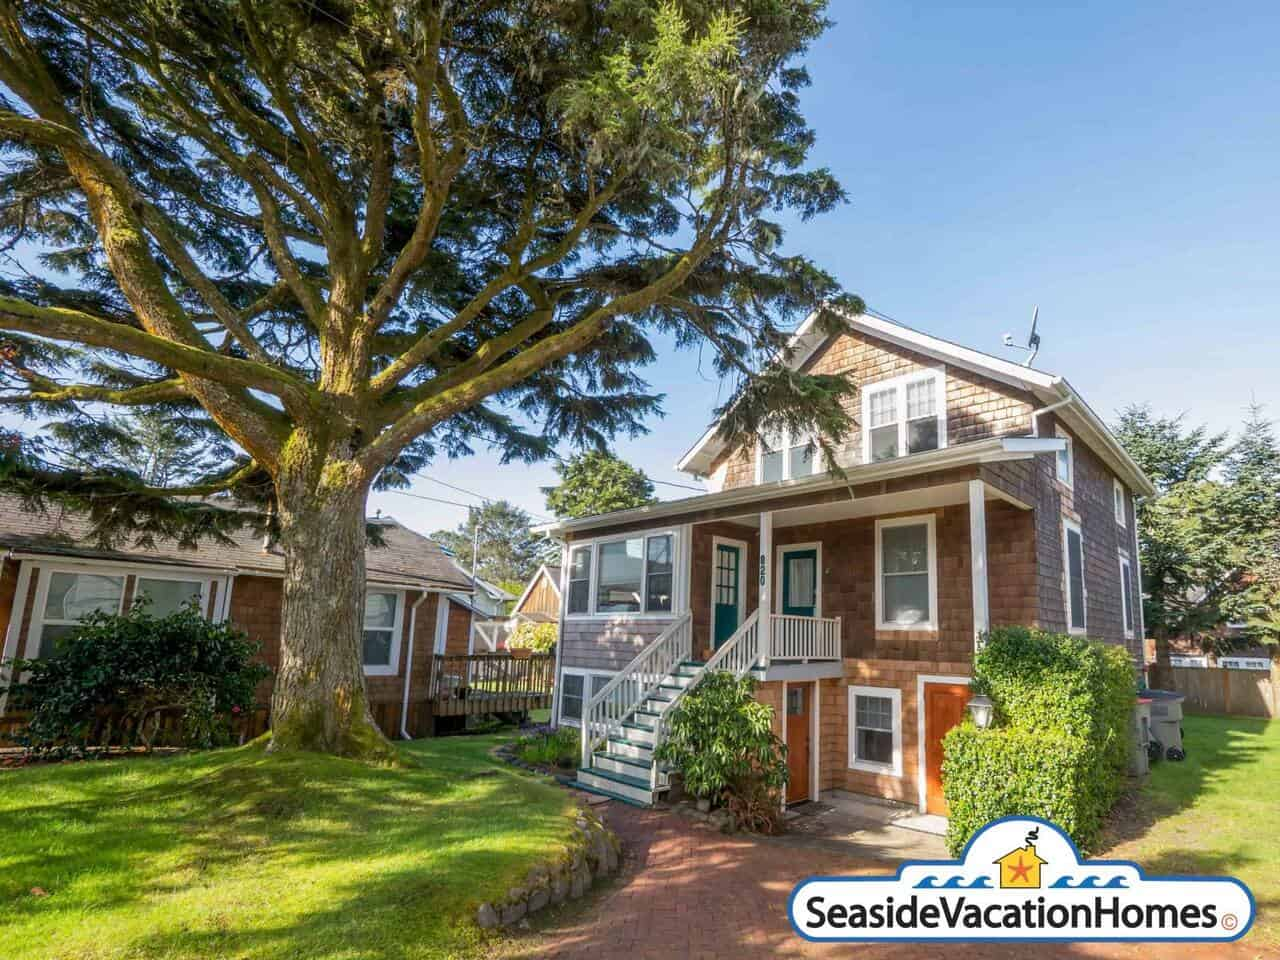 Image of Airbnb rental in Cannon Beach